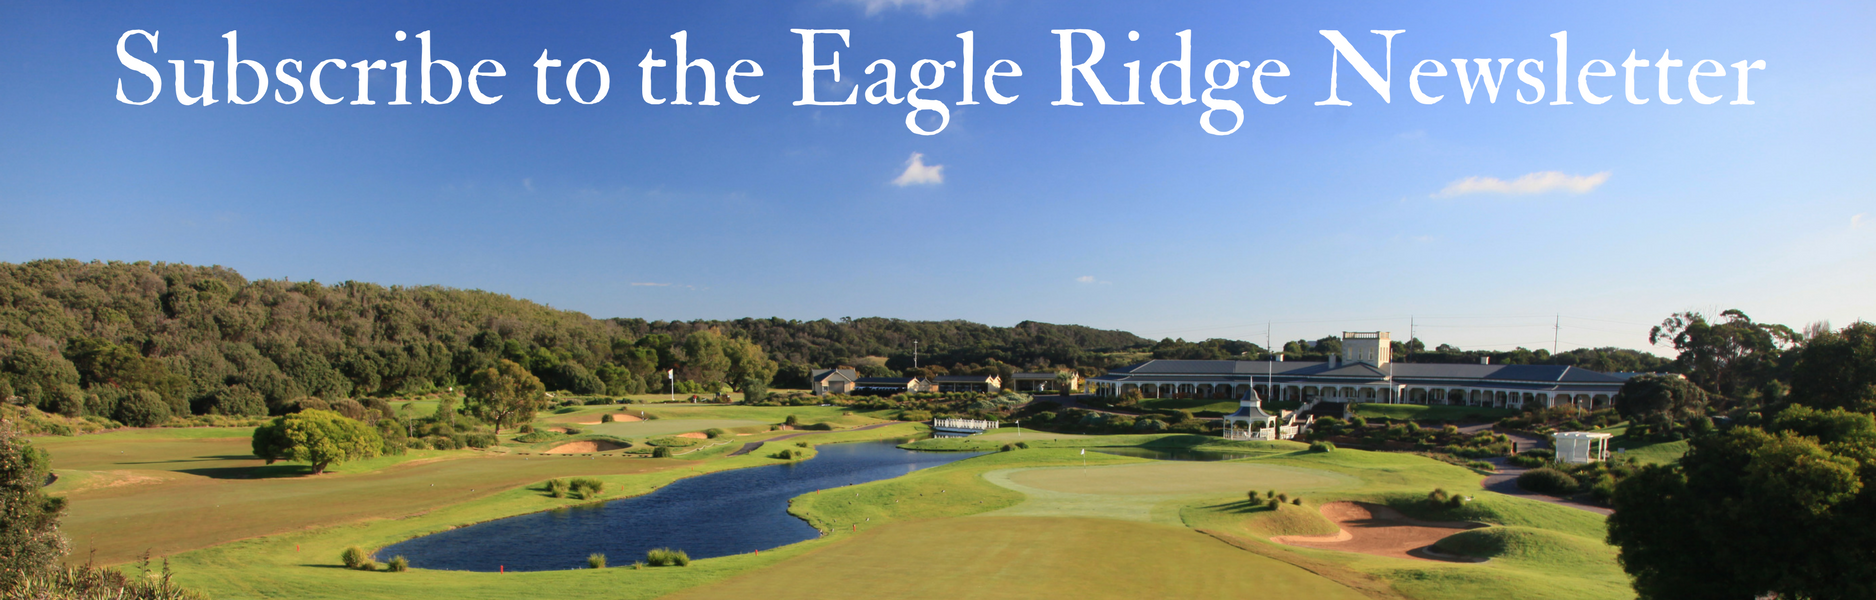 Subscribe to the Eagle Ridge Newsletter